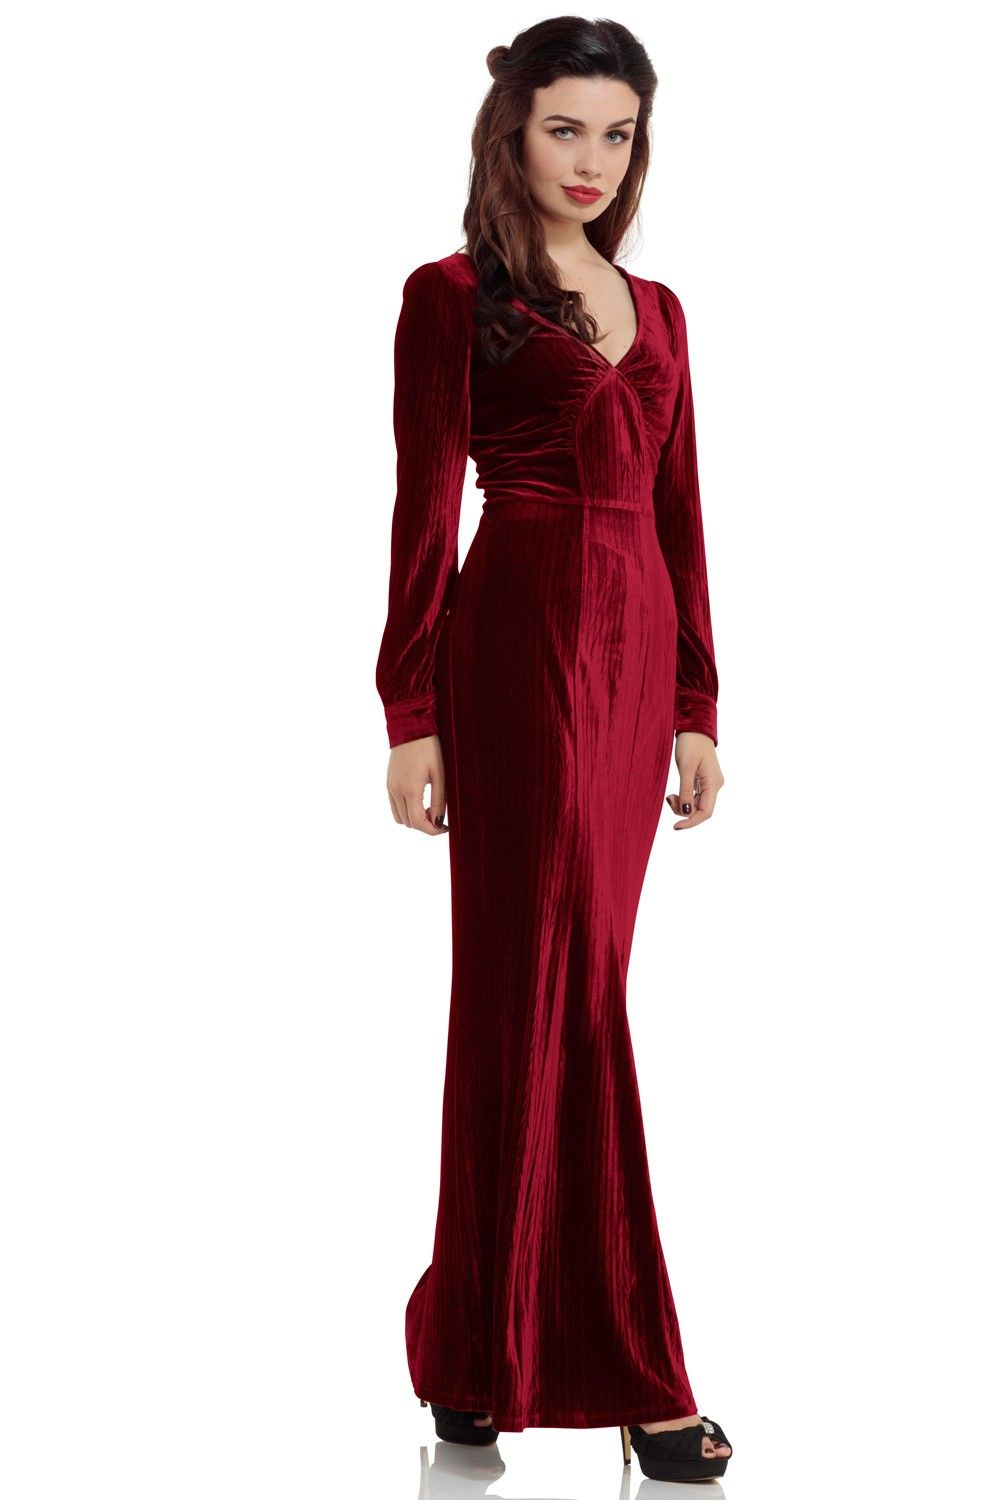 Olive s red evening gown vintage dress in pinterest